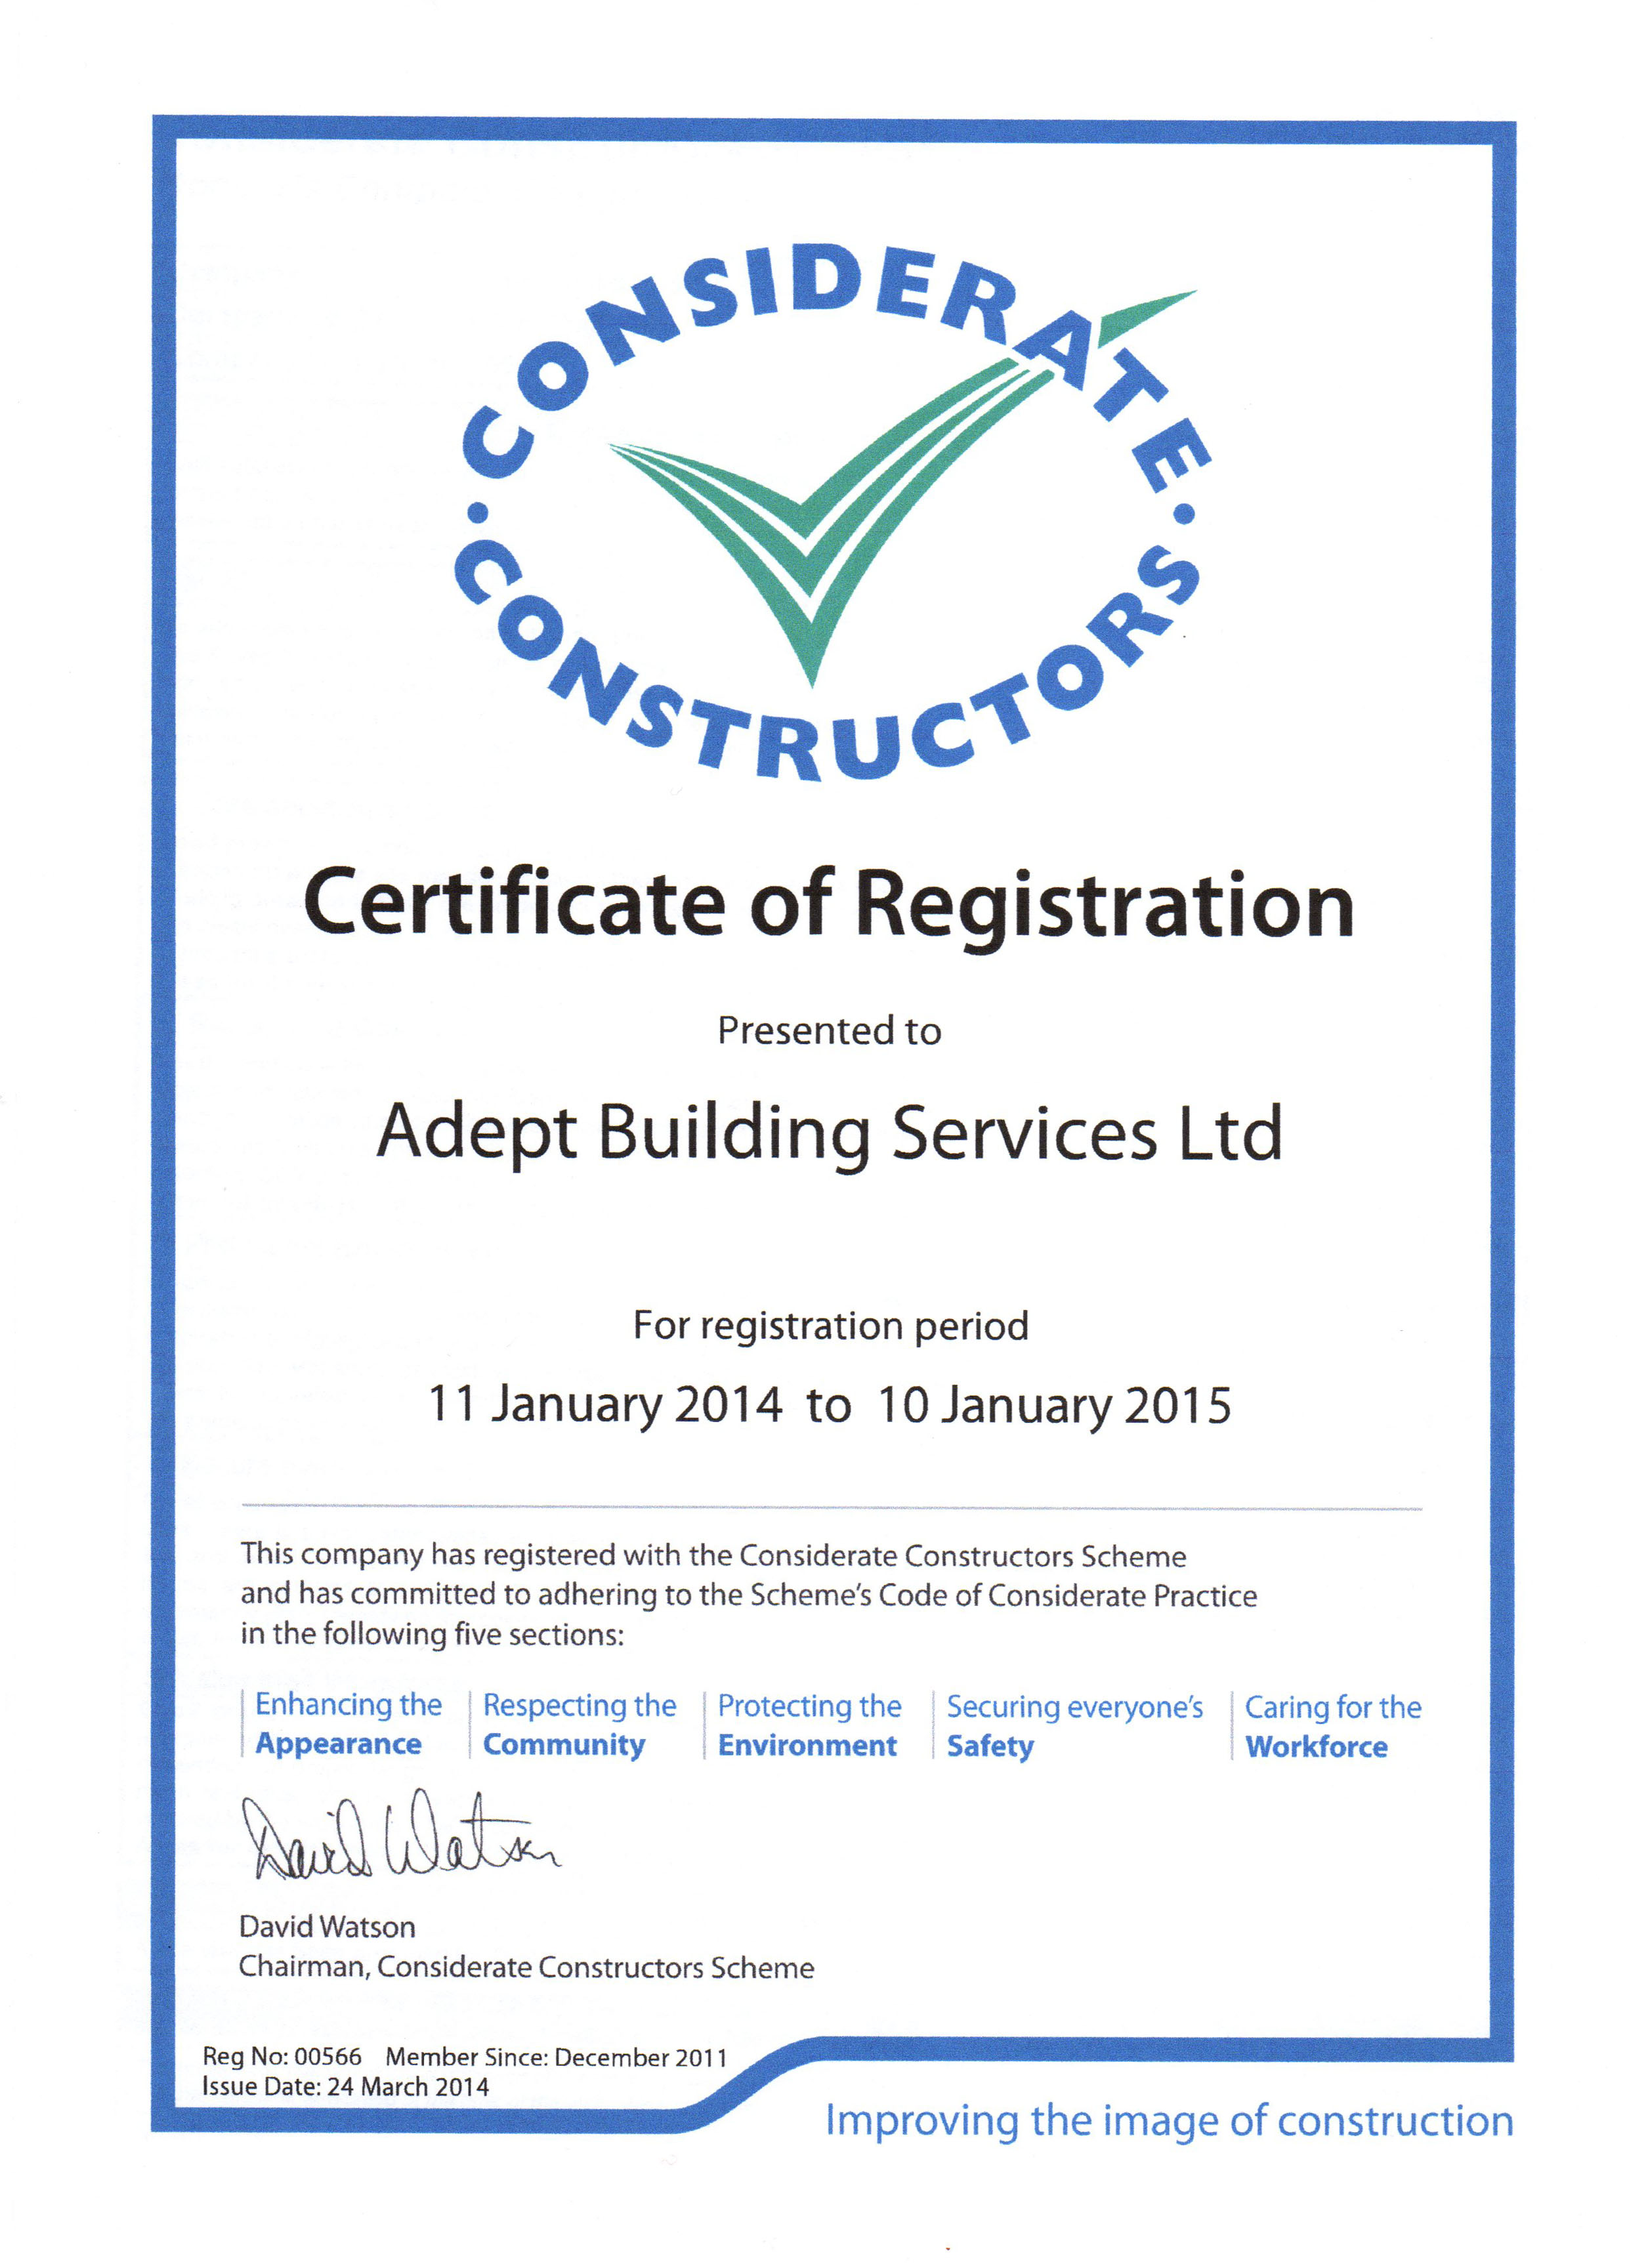 Adept Building Services